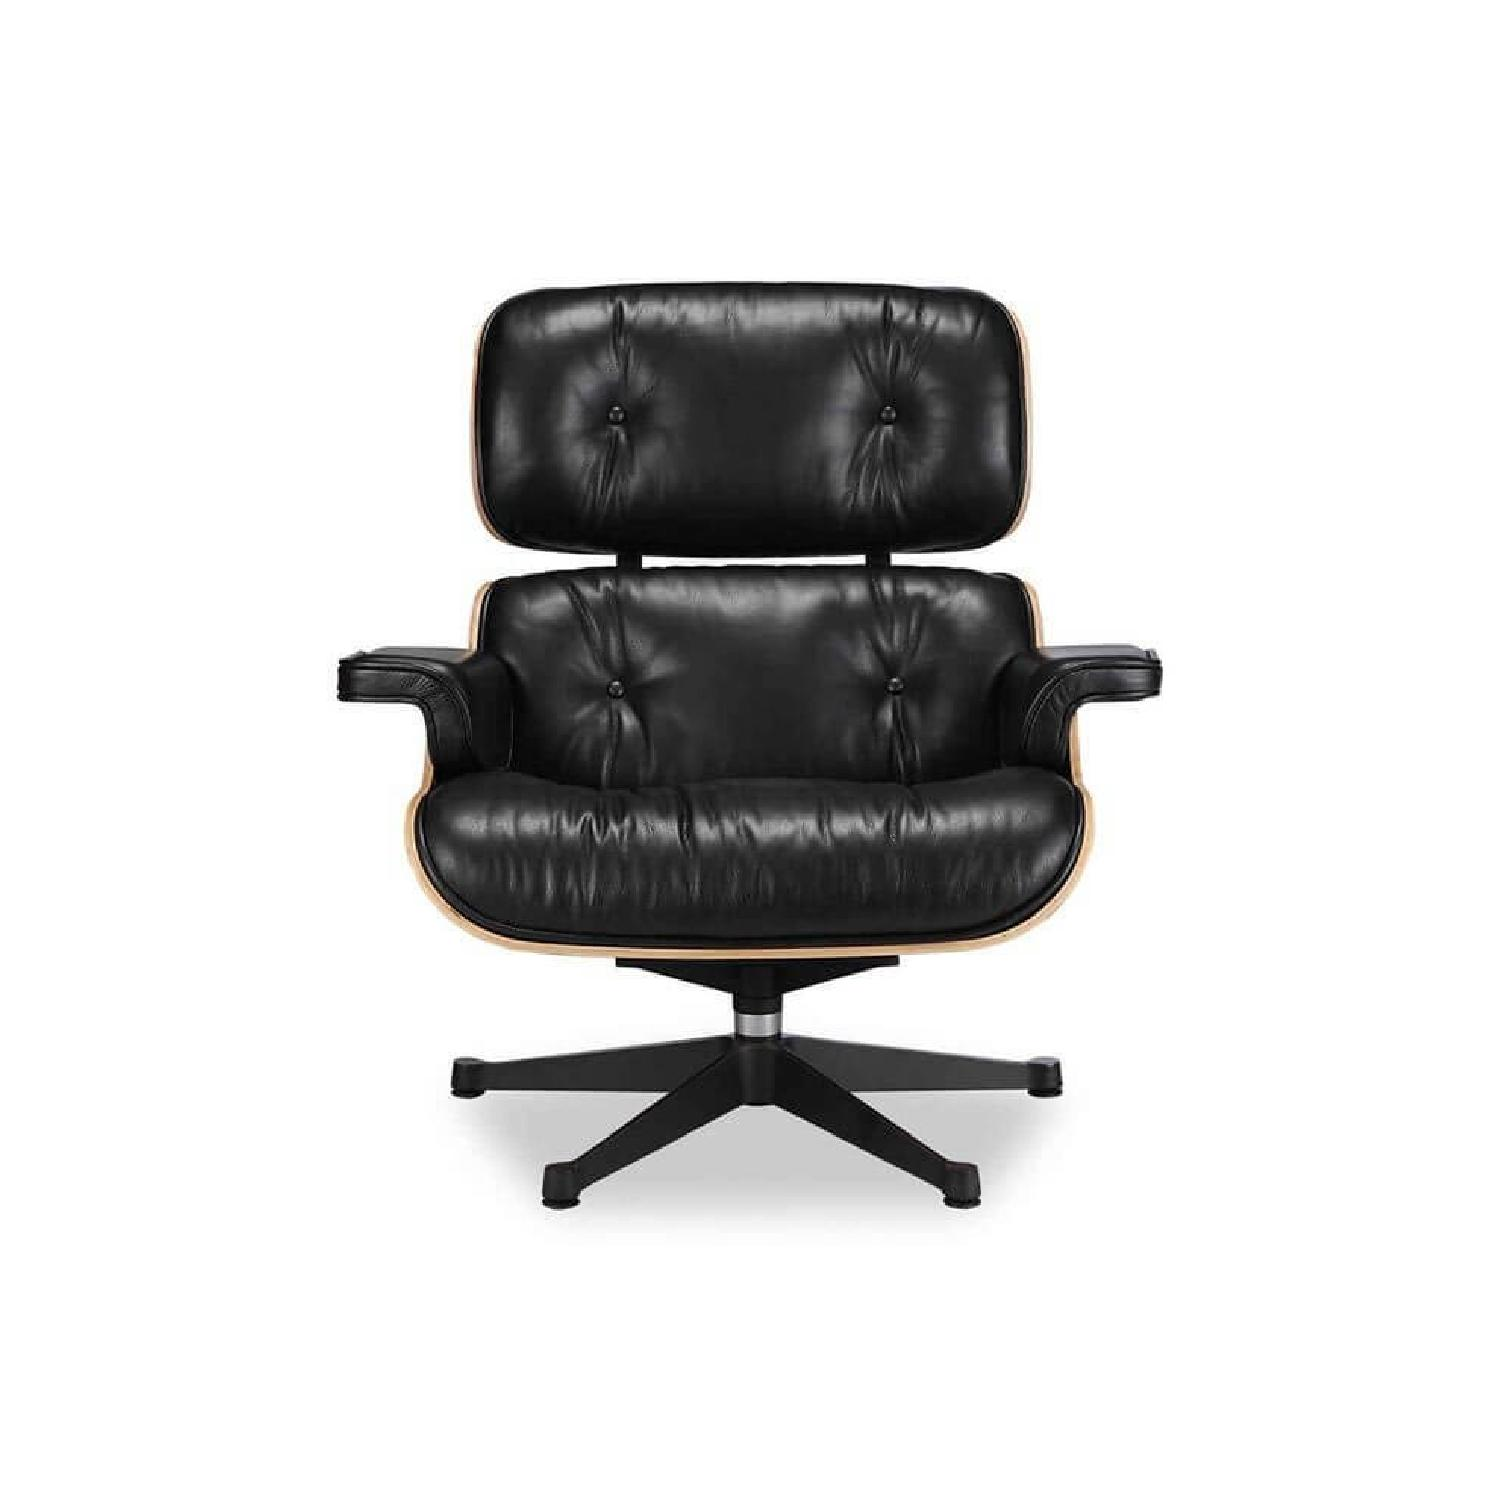 Eames Lounge Chair Replica U0026 Ottoman In Black ...